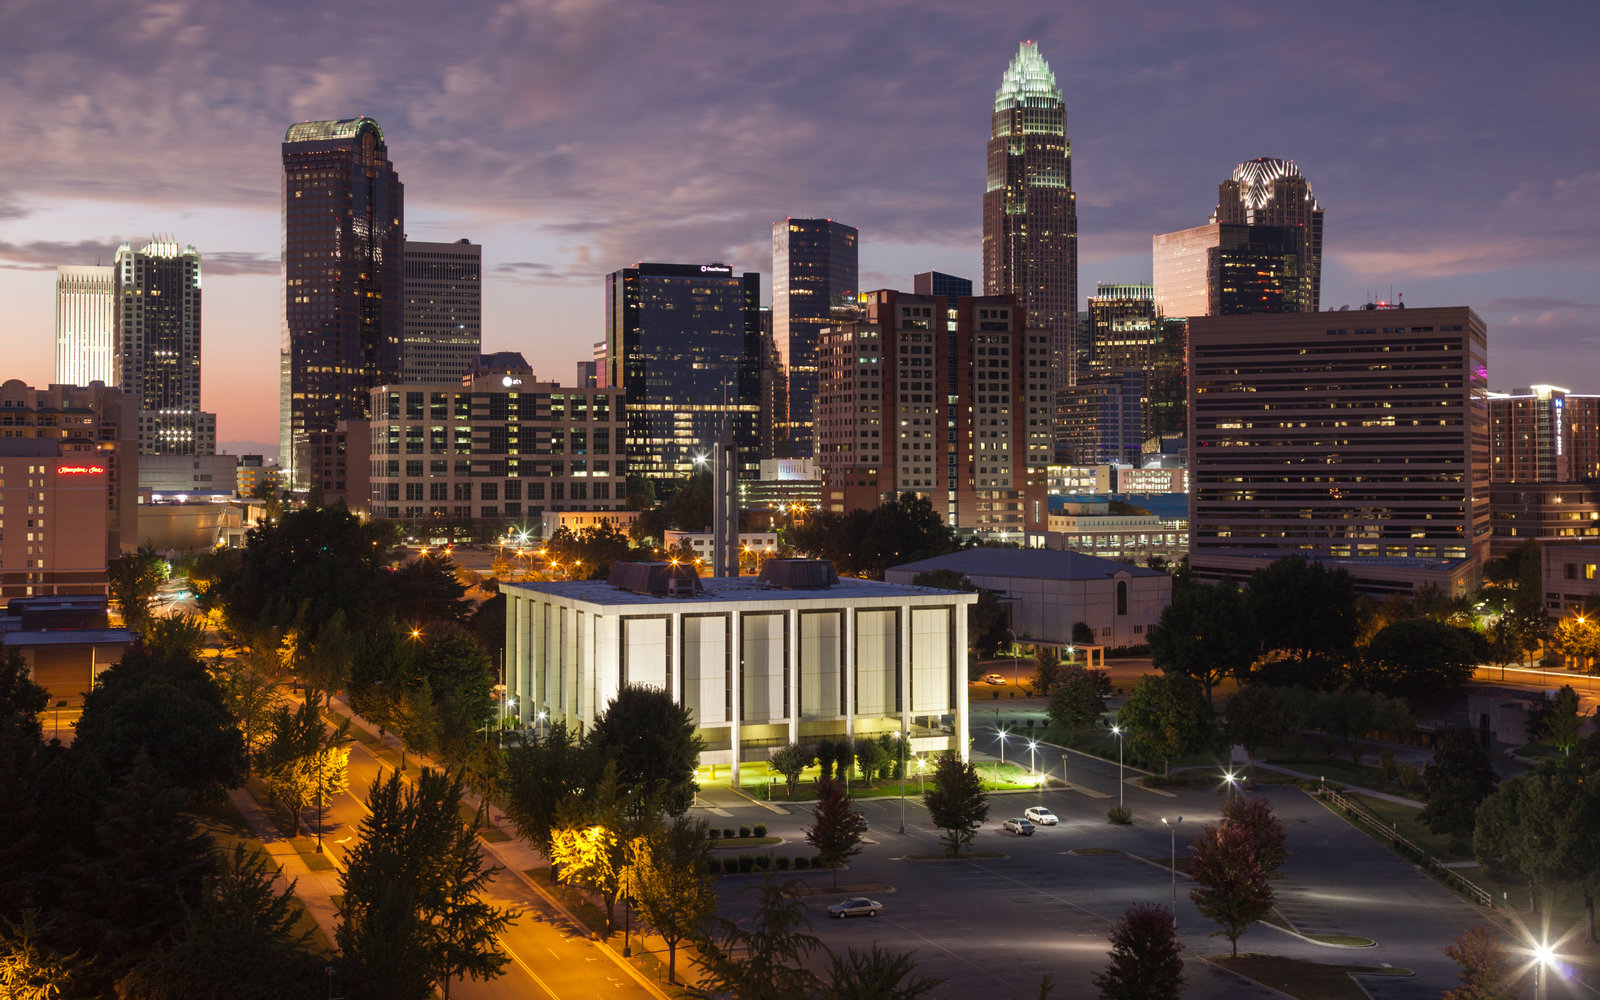 Charlotte North Carolina America's Rudest Cities